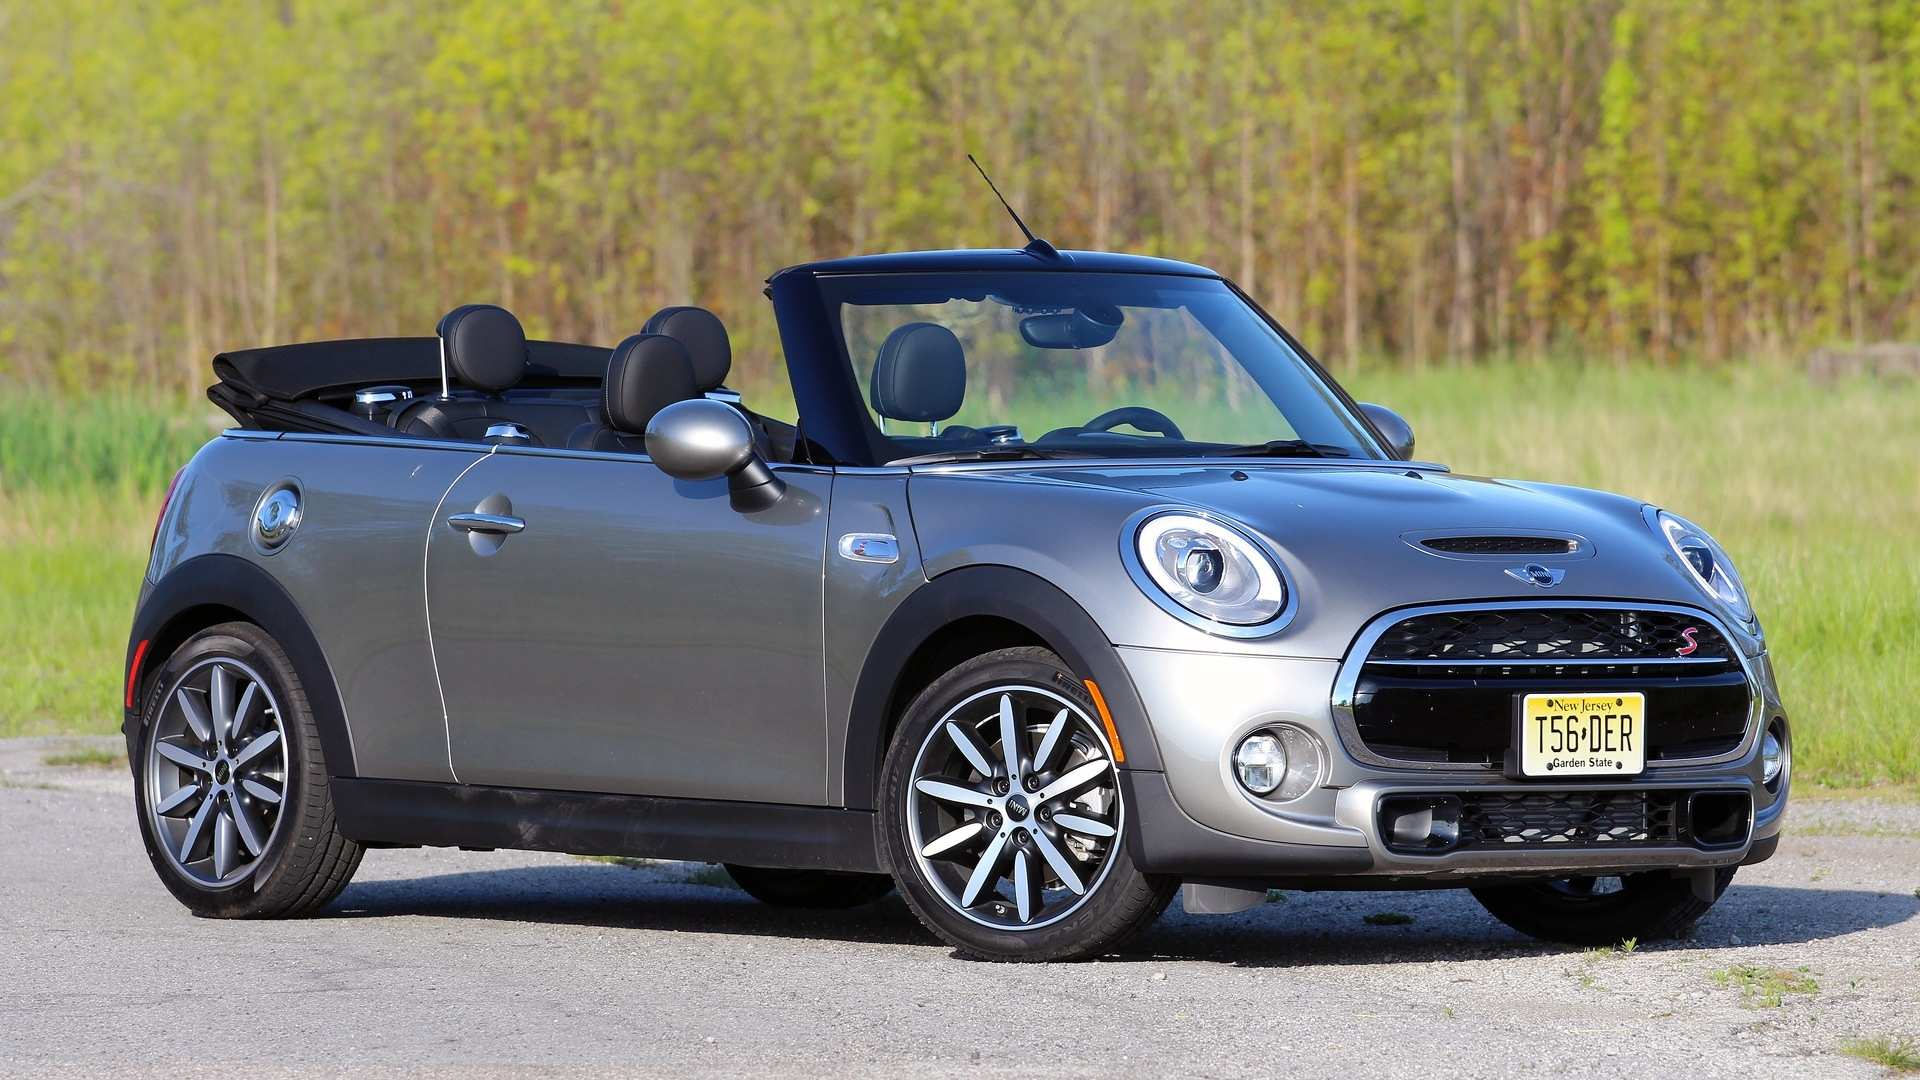 37 Concept of 2020 Mini Cooper Convertible S First Drive with 2020 Mini Cooper Convertible S